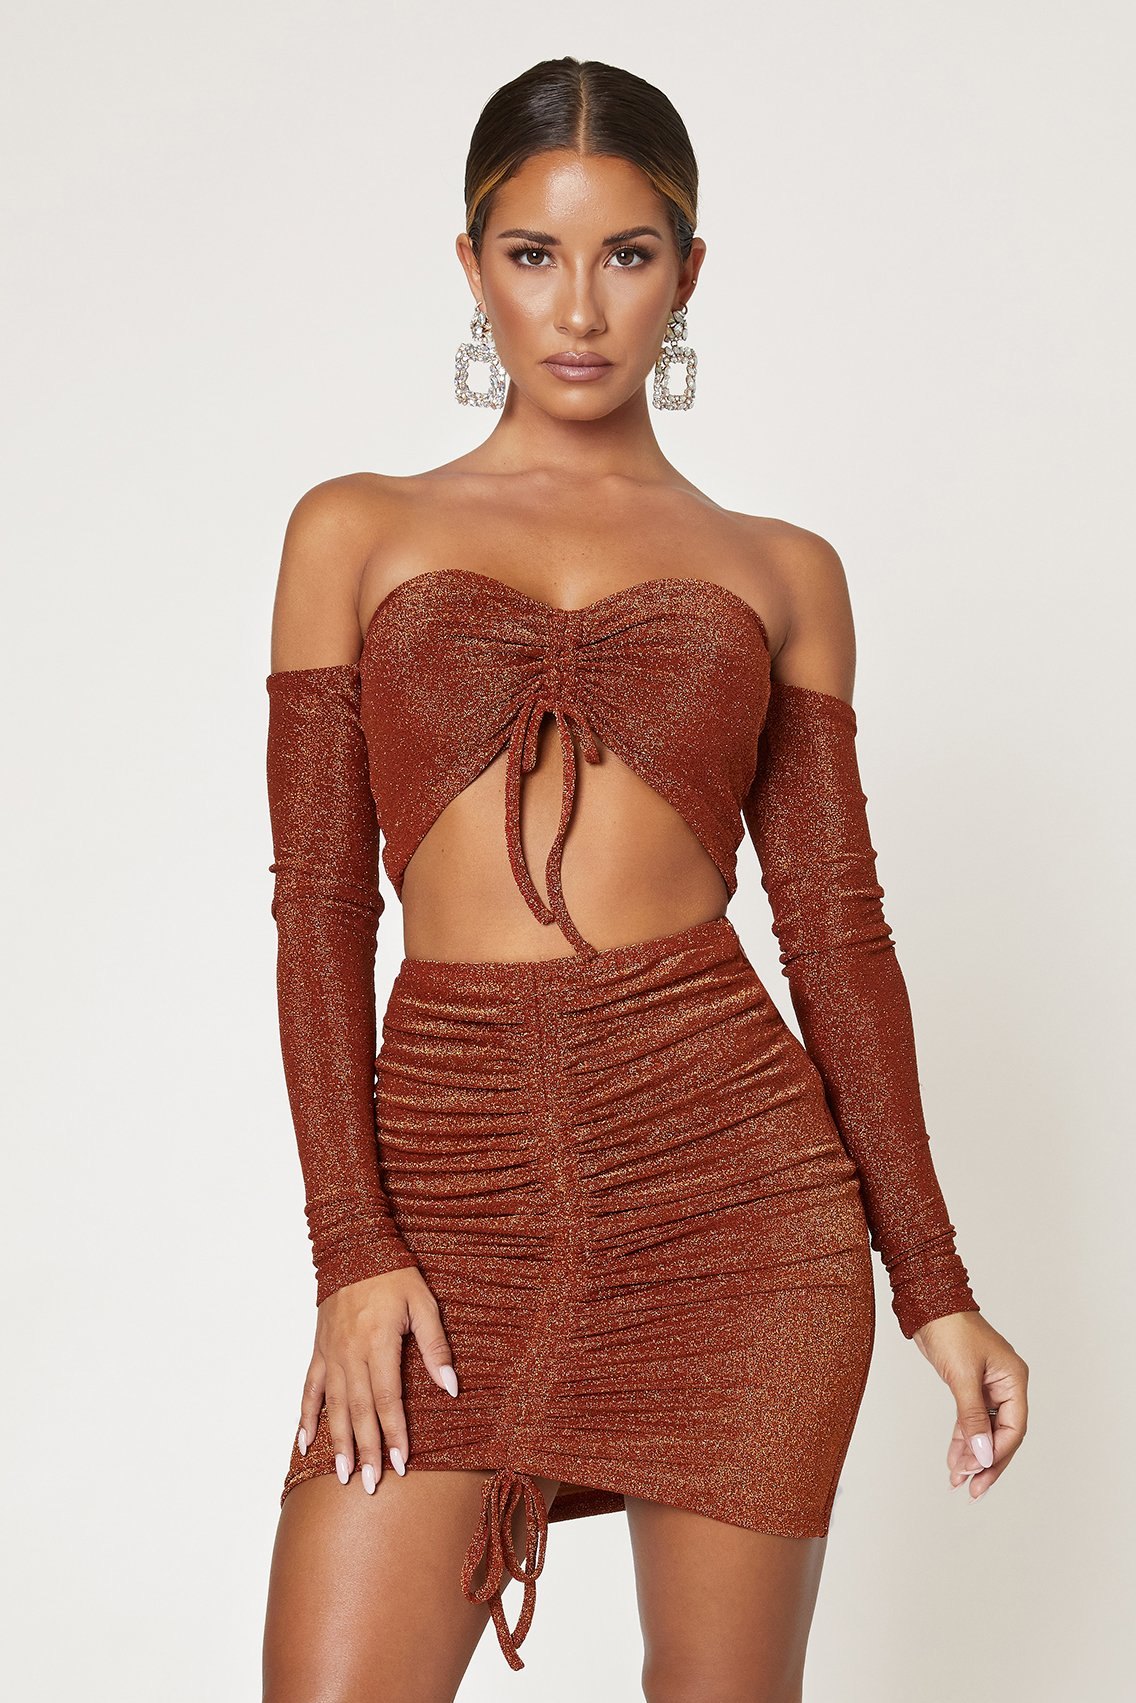 Rose Ruched Front Off The Shoulder Top - Shimmer Orange - MESHKI